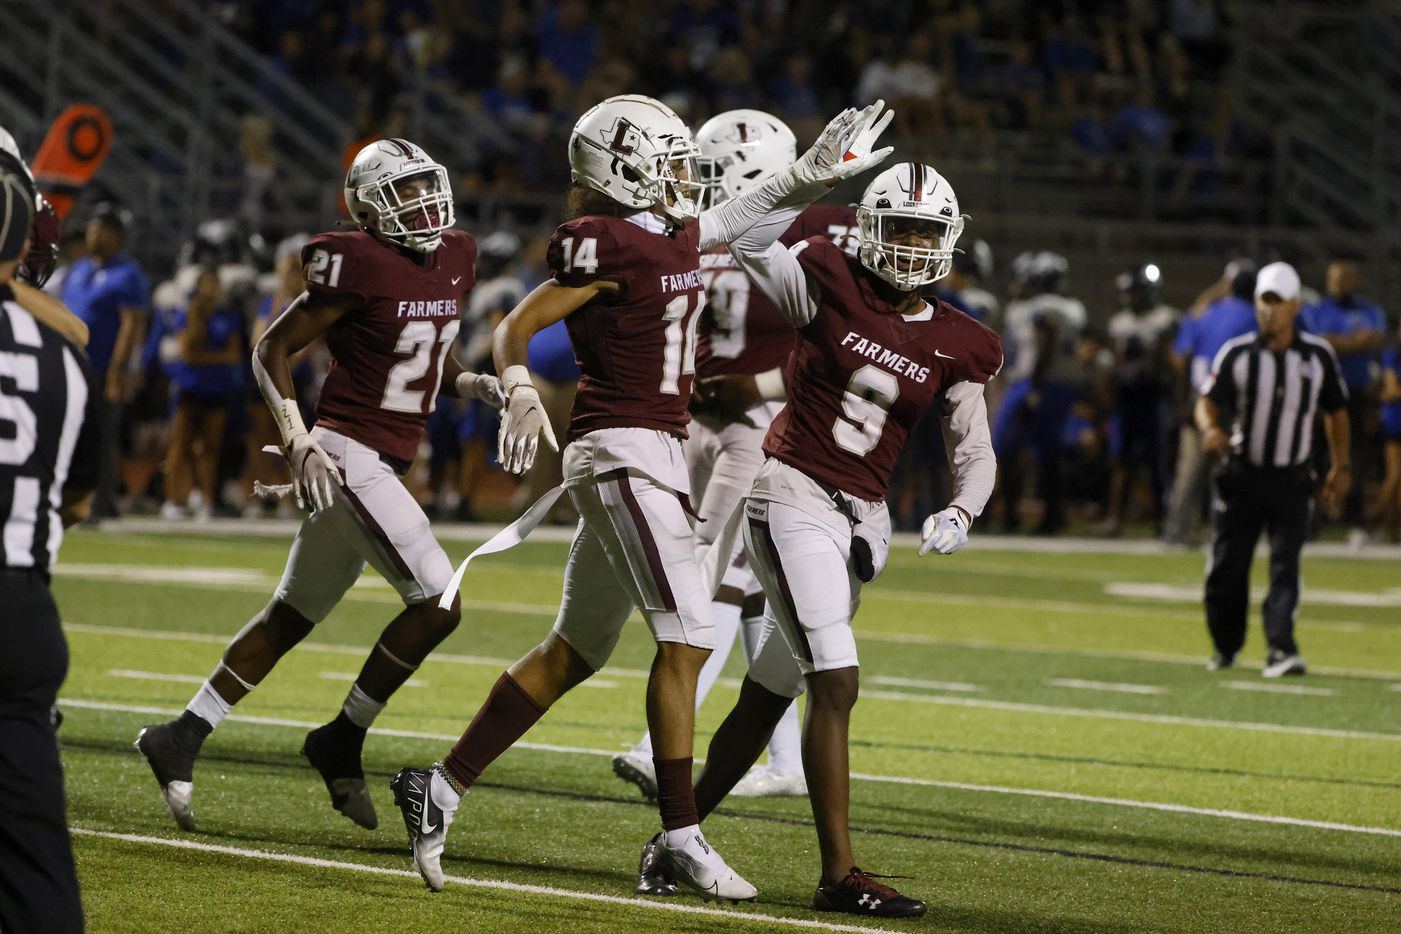 Lewisville wide receiver Kye Stone (14) gets congratulated by Armani Winfield after scored on an offensive fumble at the goalie against Plano West during the first half of a high school football game in Lewisville, Texas on Friday, Sept. 24, 2021. (Michael Ainsworth/Special Contributor)